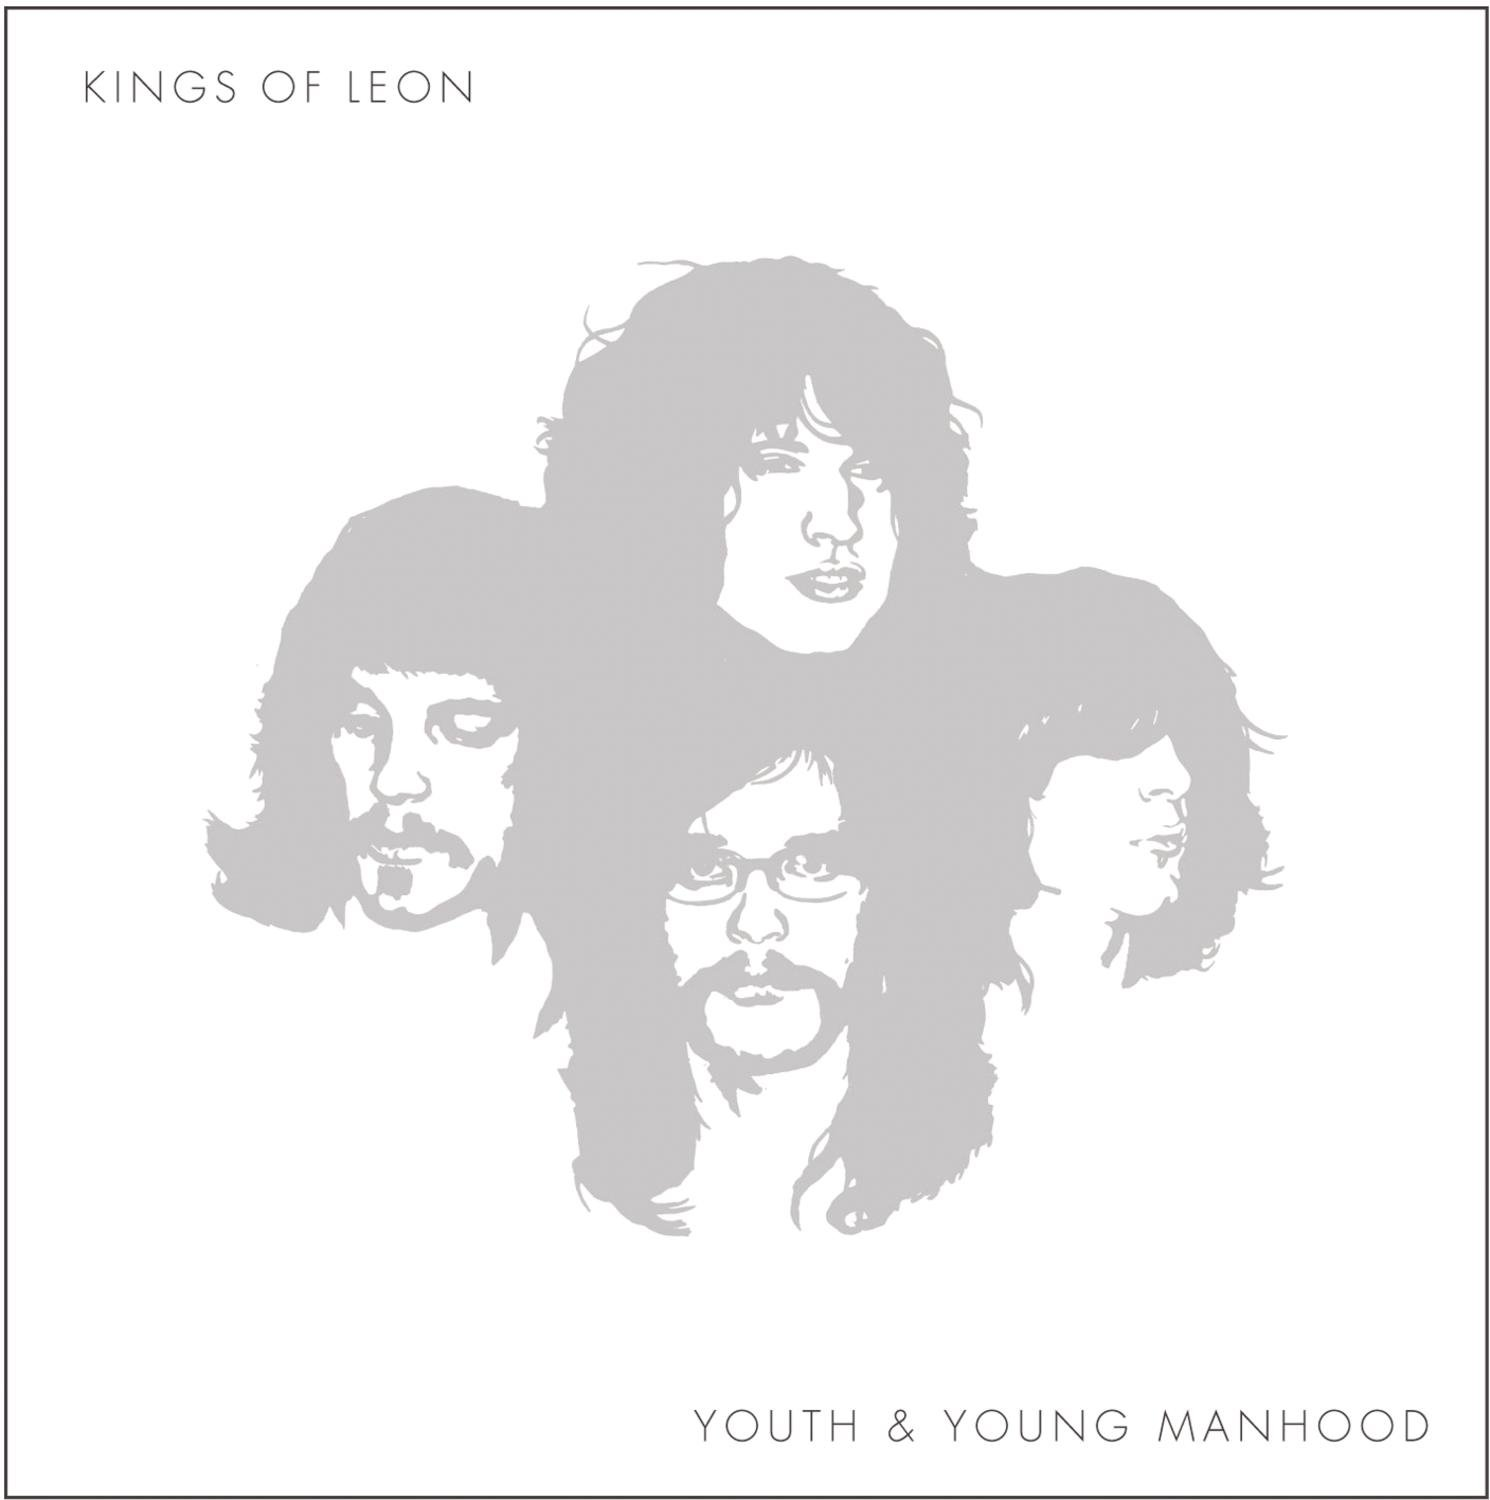 10.10 Kings of Leon - Youth & Young Manhood